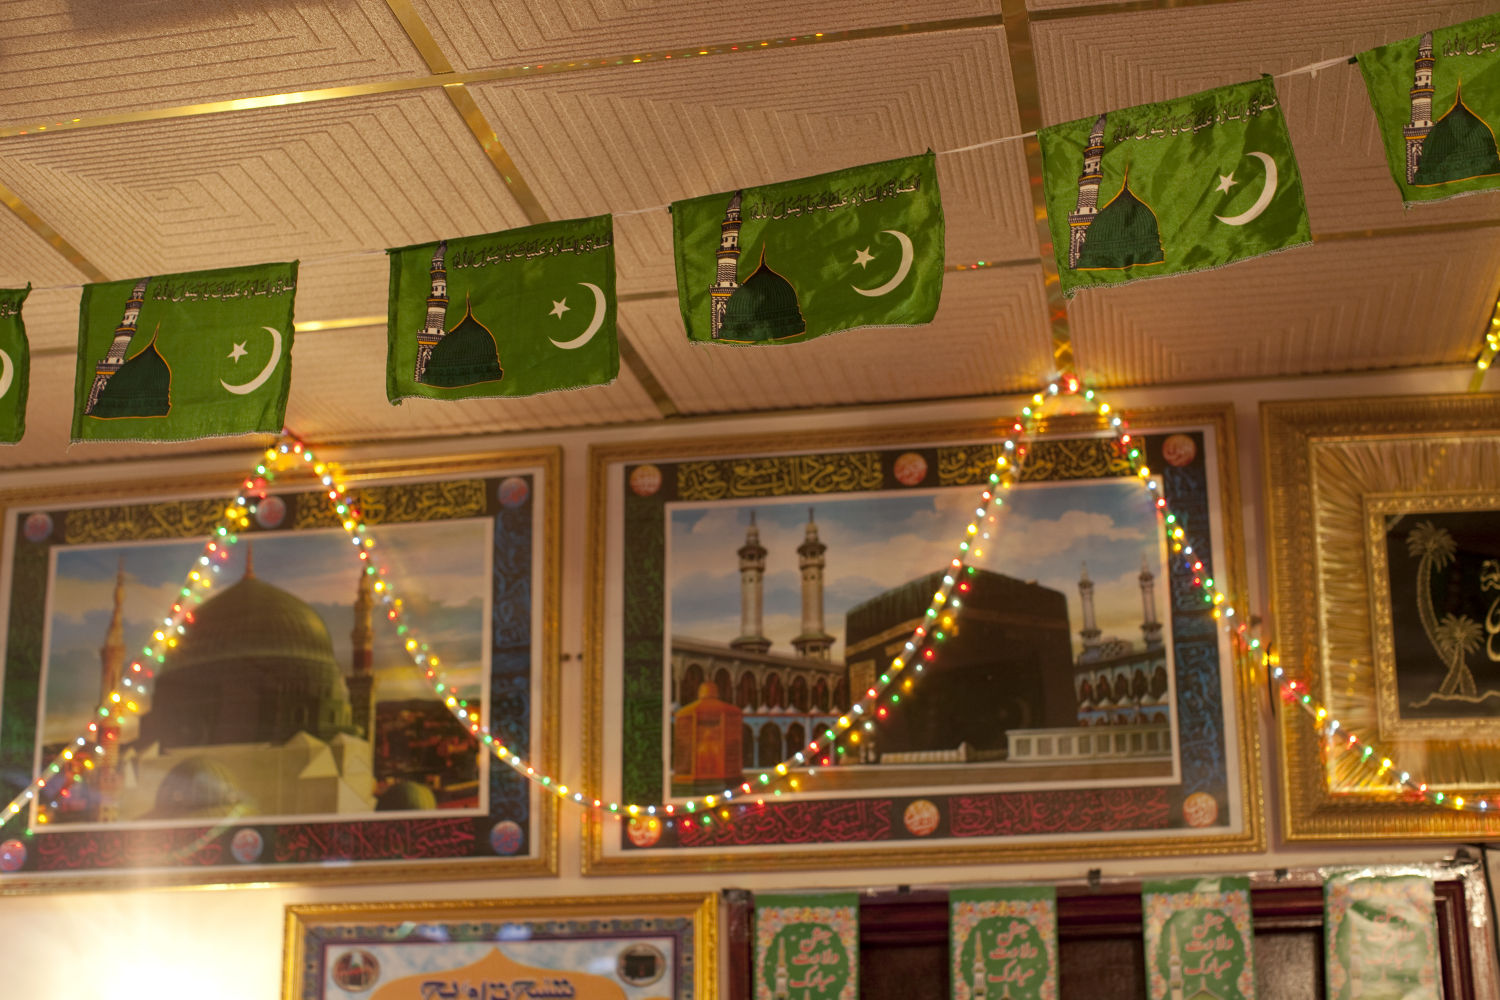 Mosque with fairy lights © Mahtab Hussain - The Quiet Town of Tipton